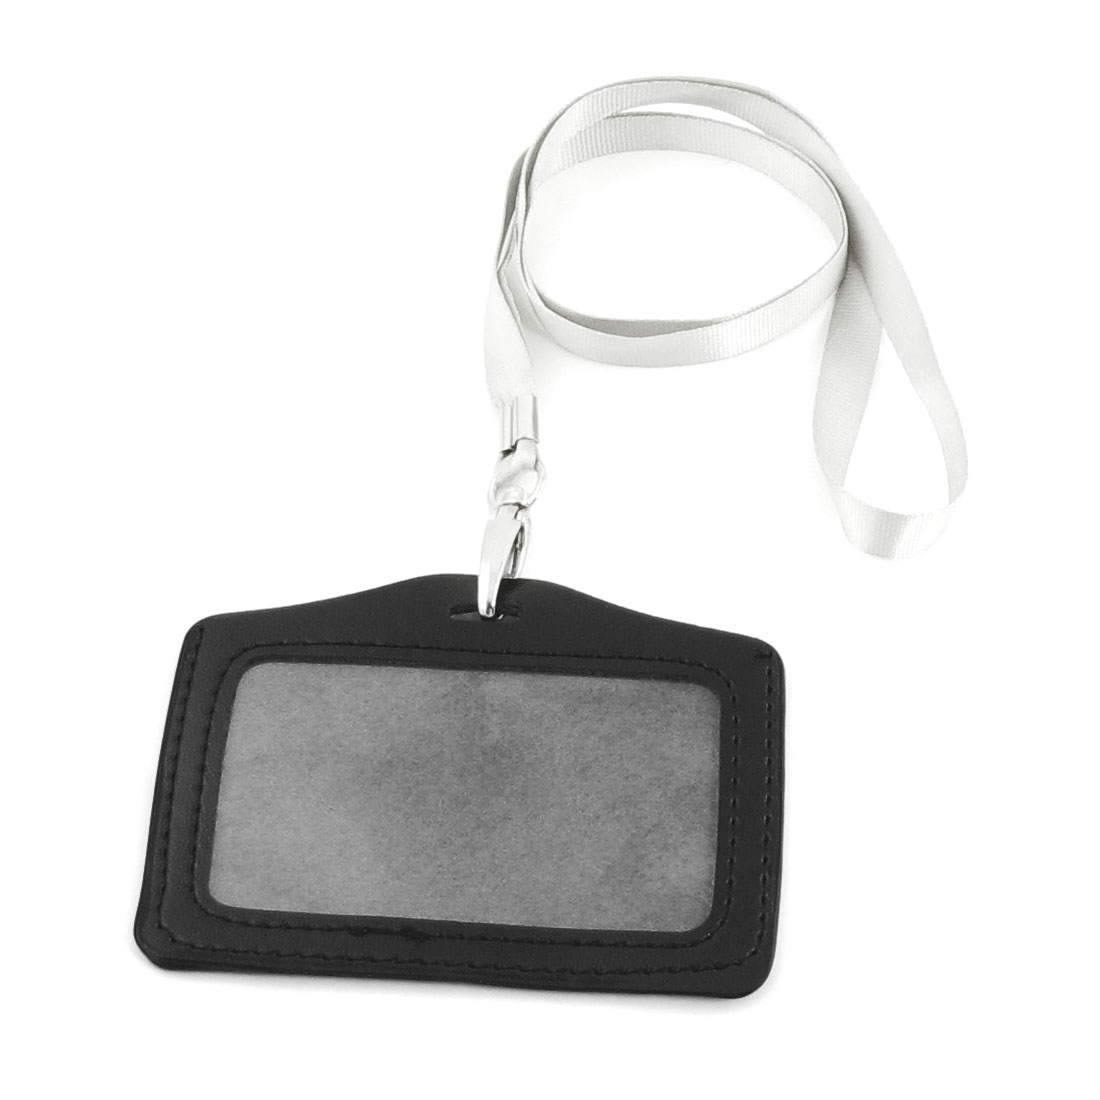 Horizontal Faux Leather Detachable ID Card Holder Black Light Gray